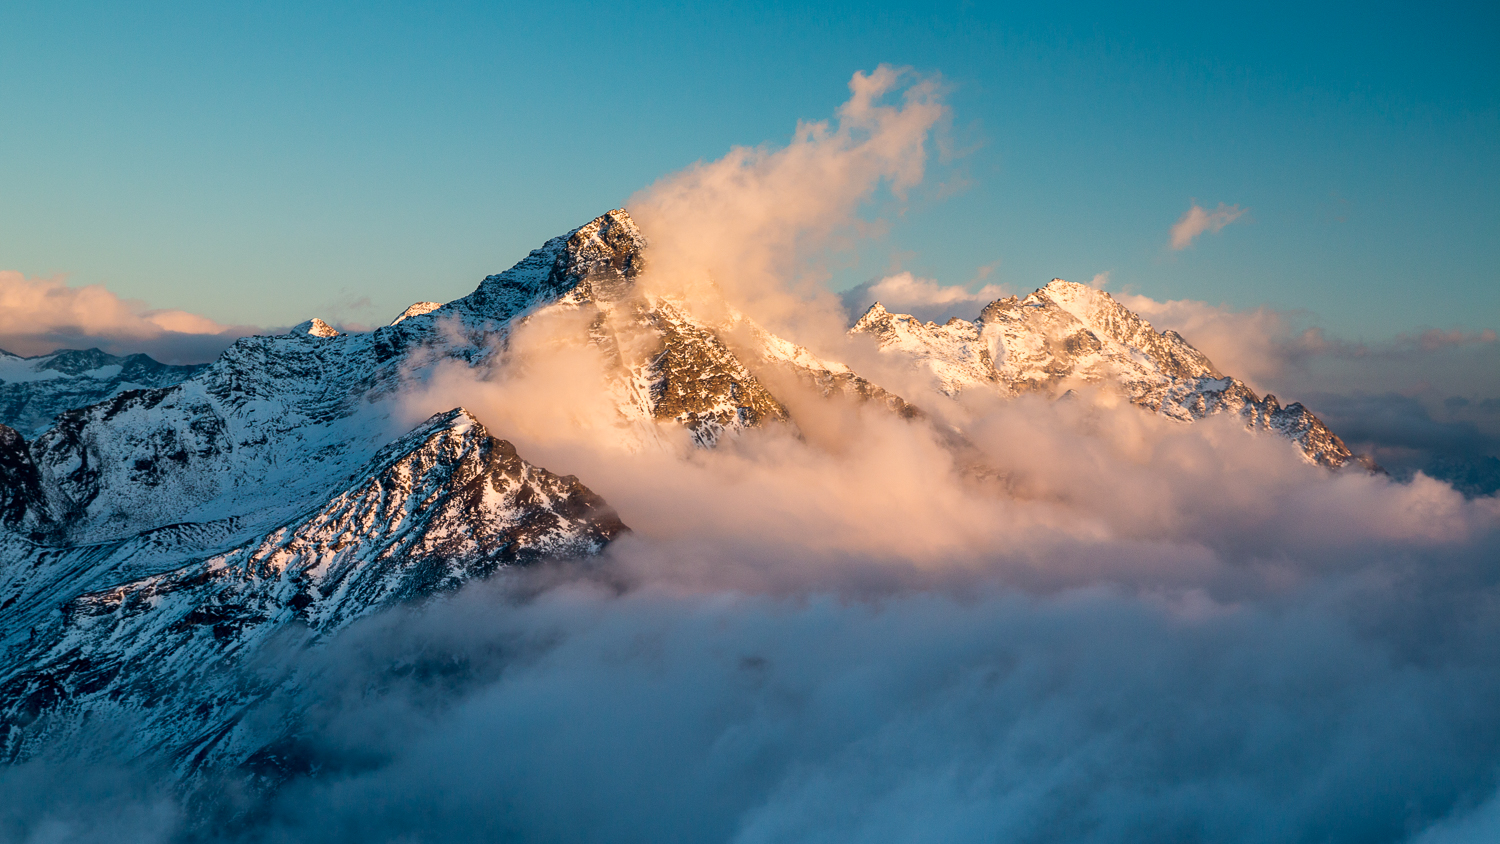 29 September 2015, Clouds over Piz Lunghin 2780m